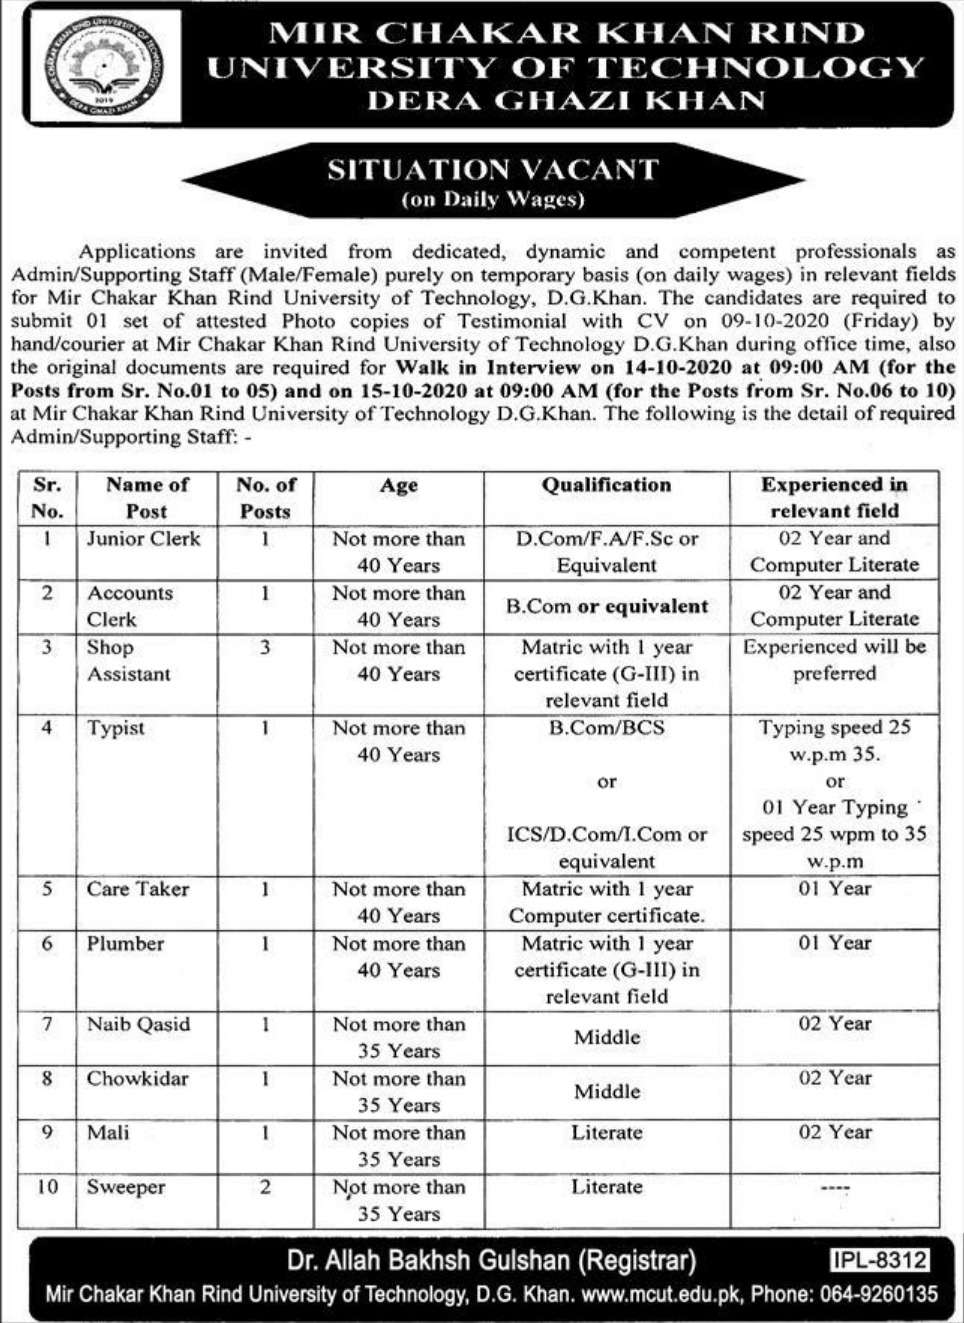 Mir Chakar Khan Rind University of Technology MCKRUT D.G. Khan Jobs September 2020